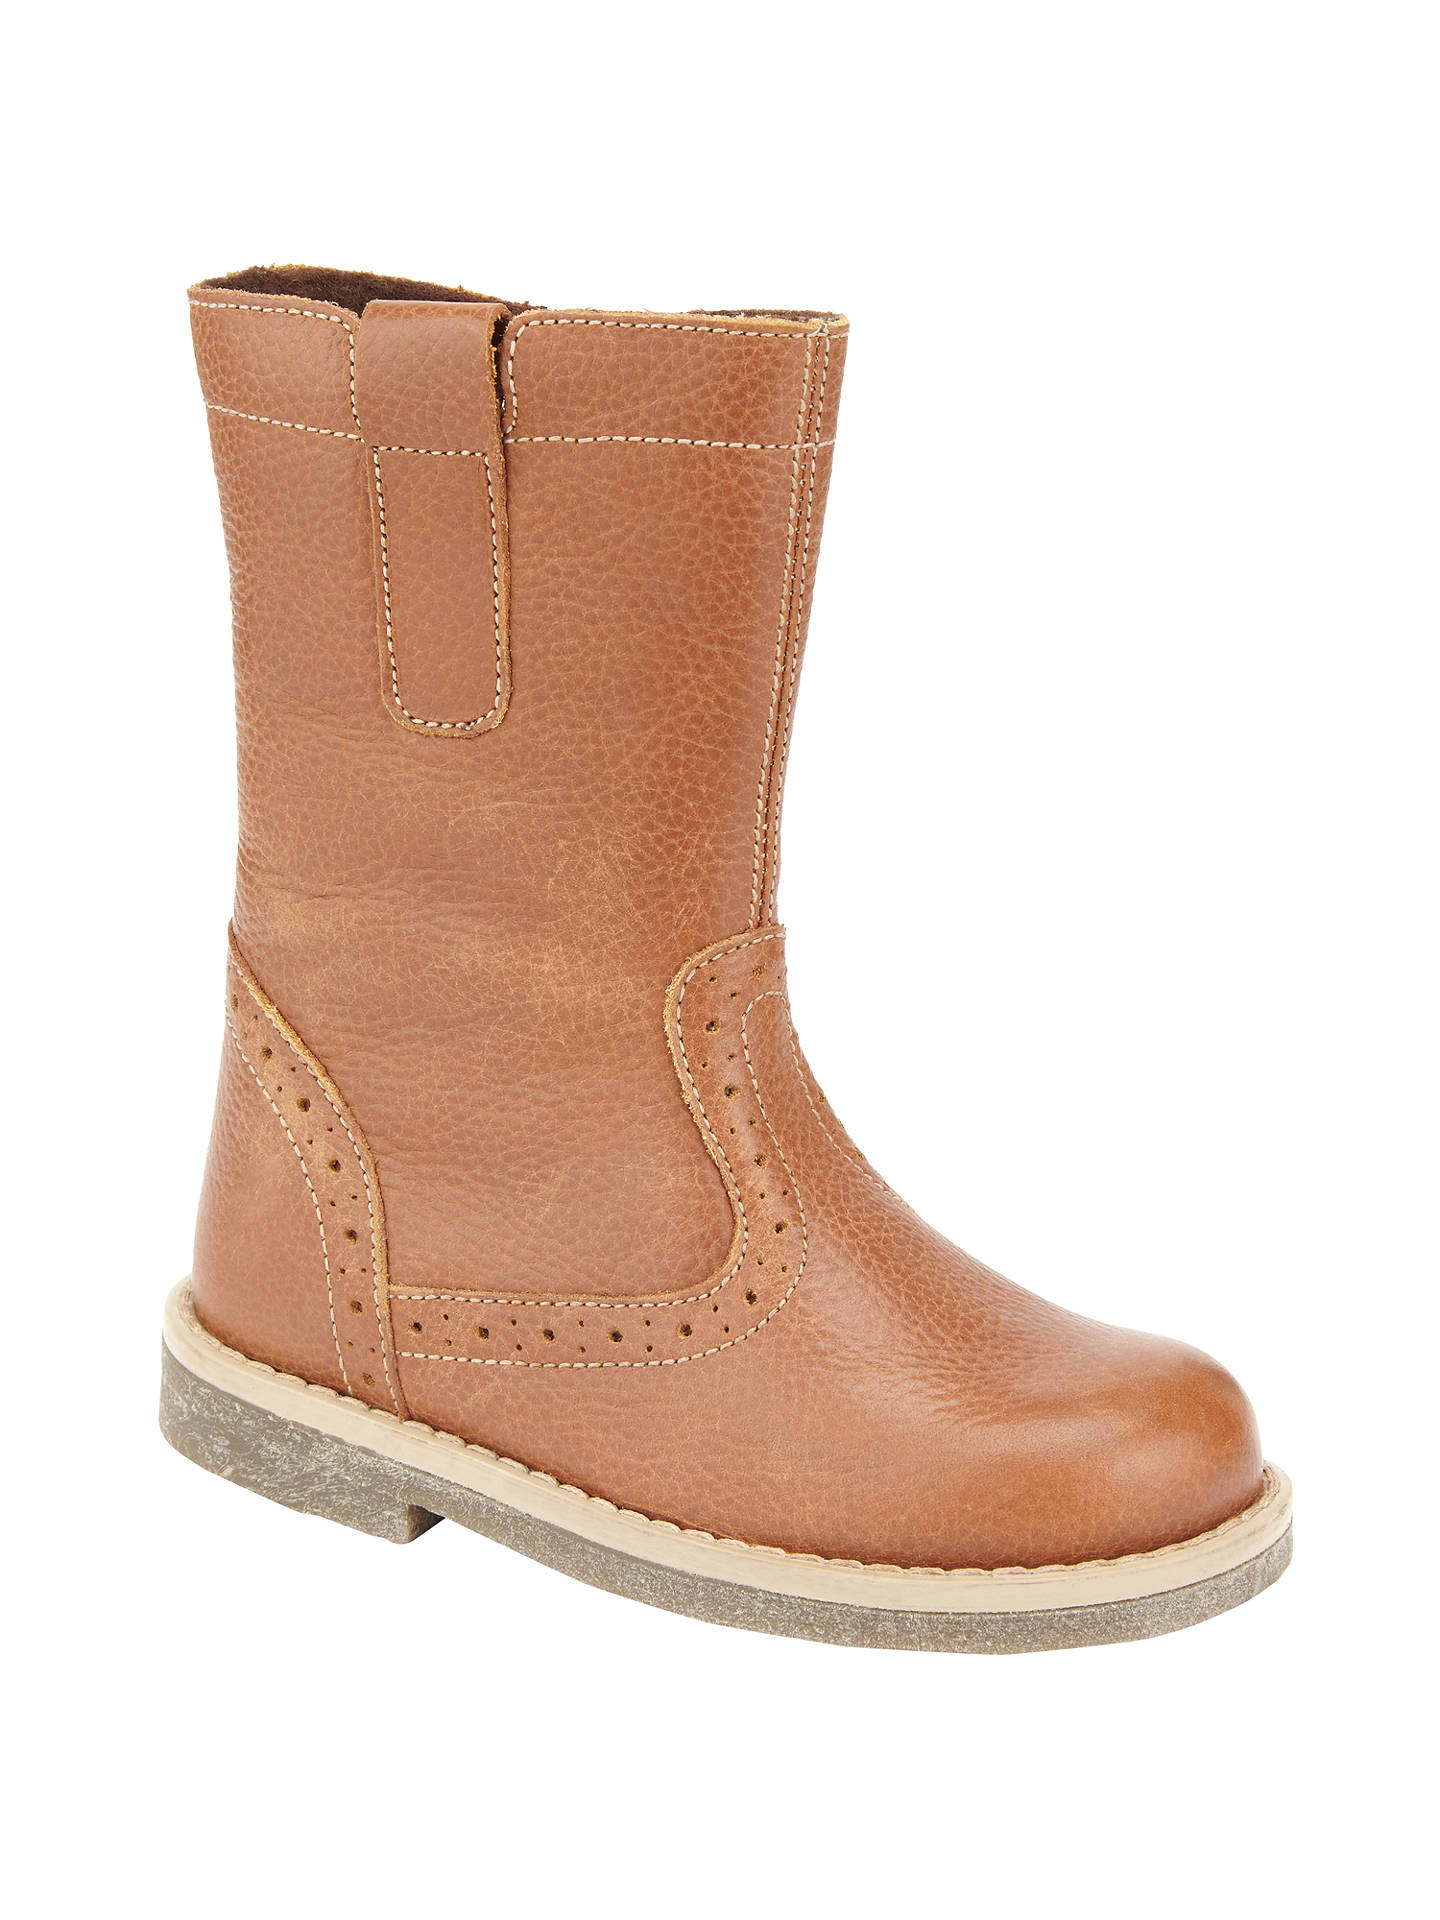 BuyJohn Lewis & Partners Isobel Leather Boots, Brown, 23 Online at johnlewis.com